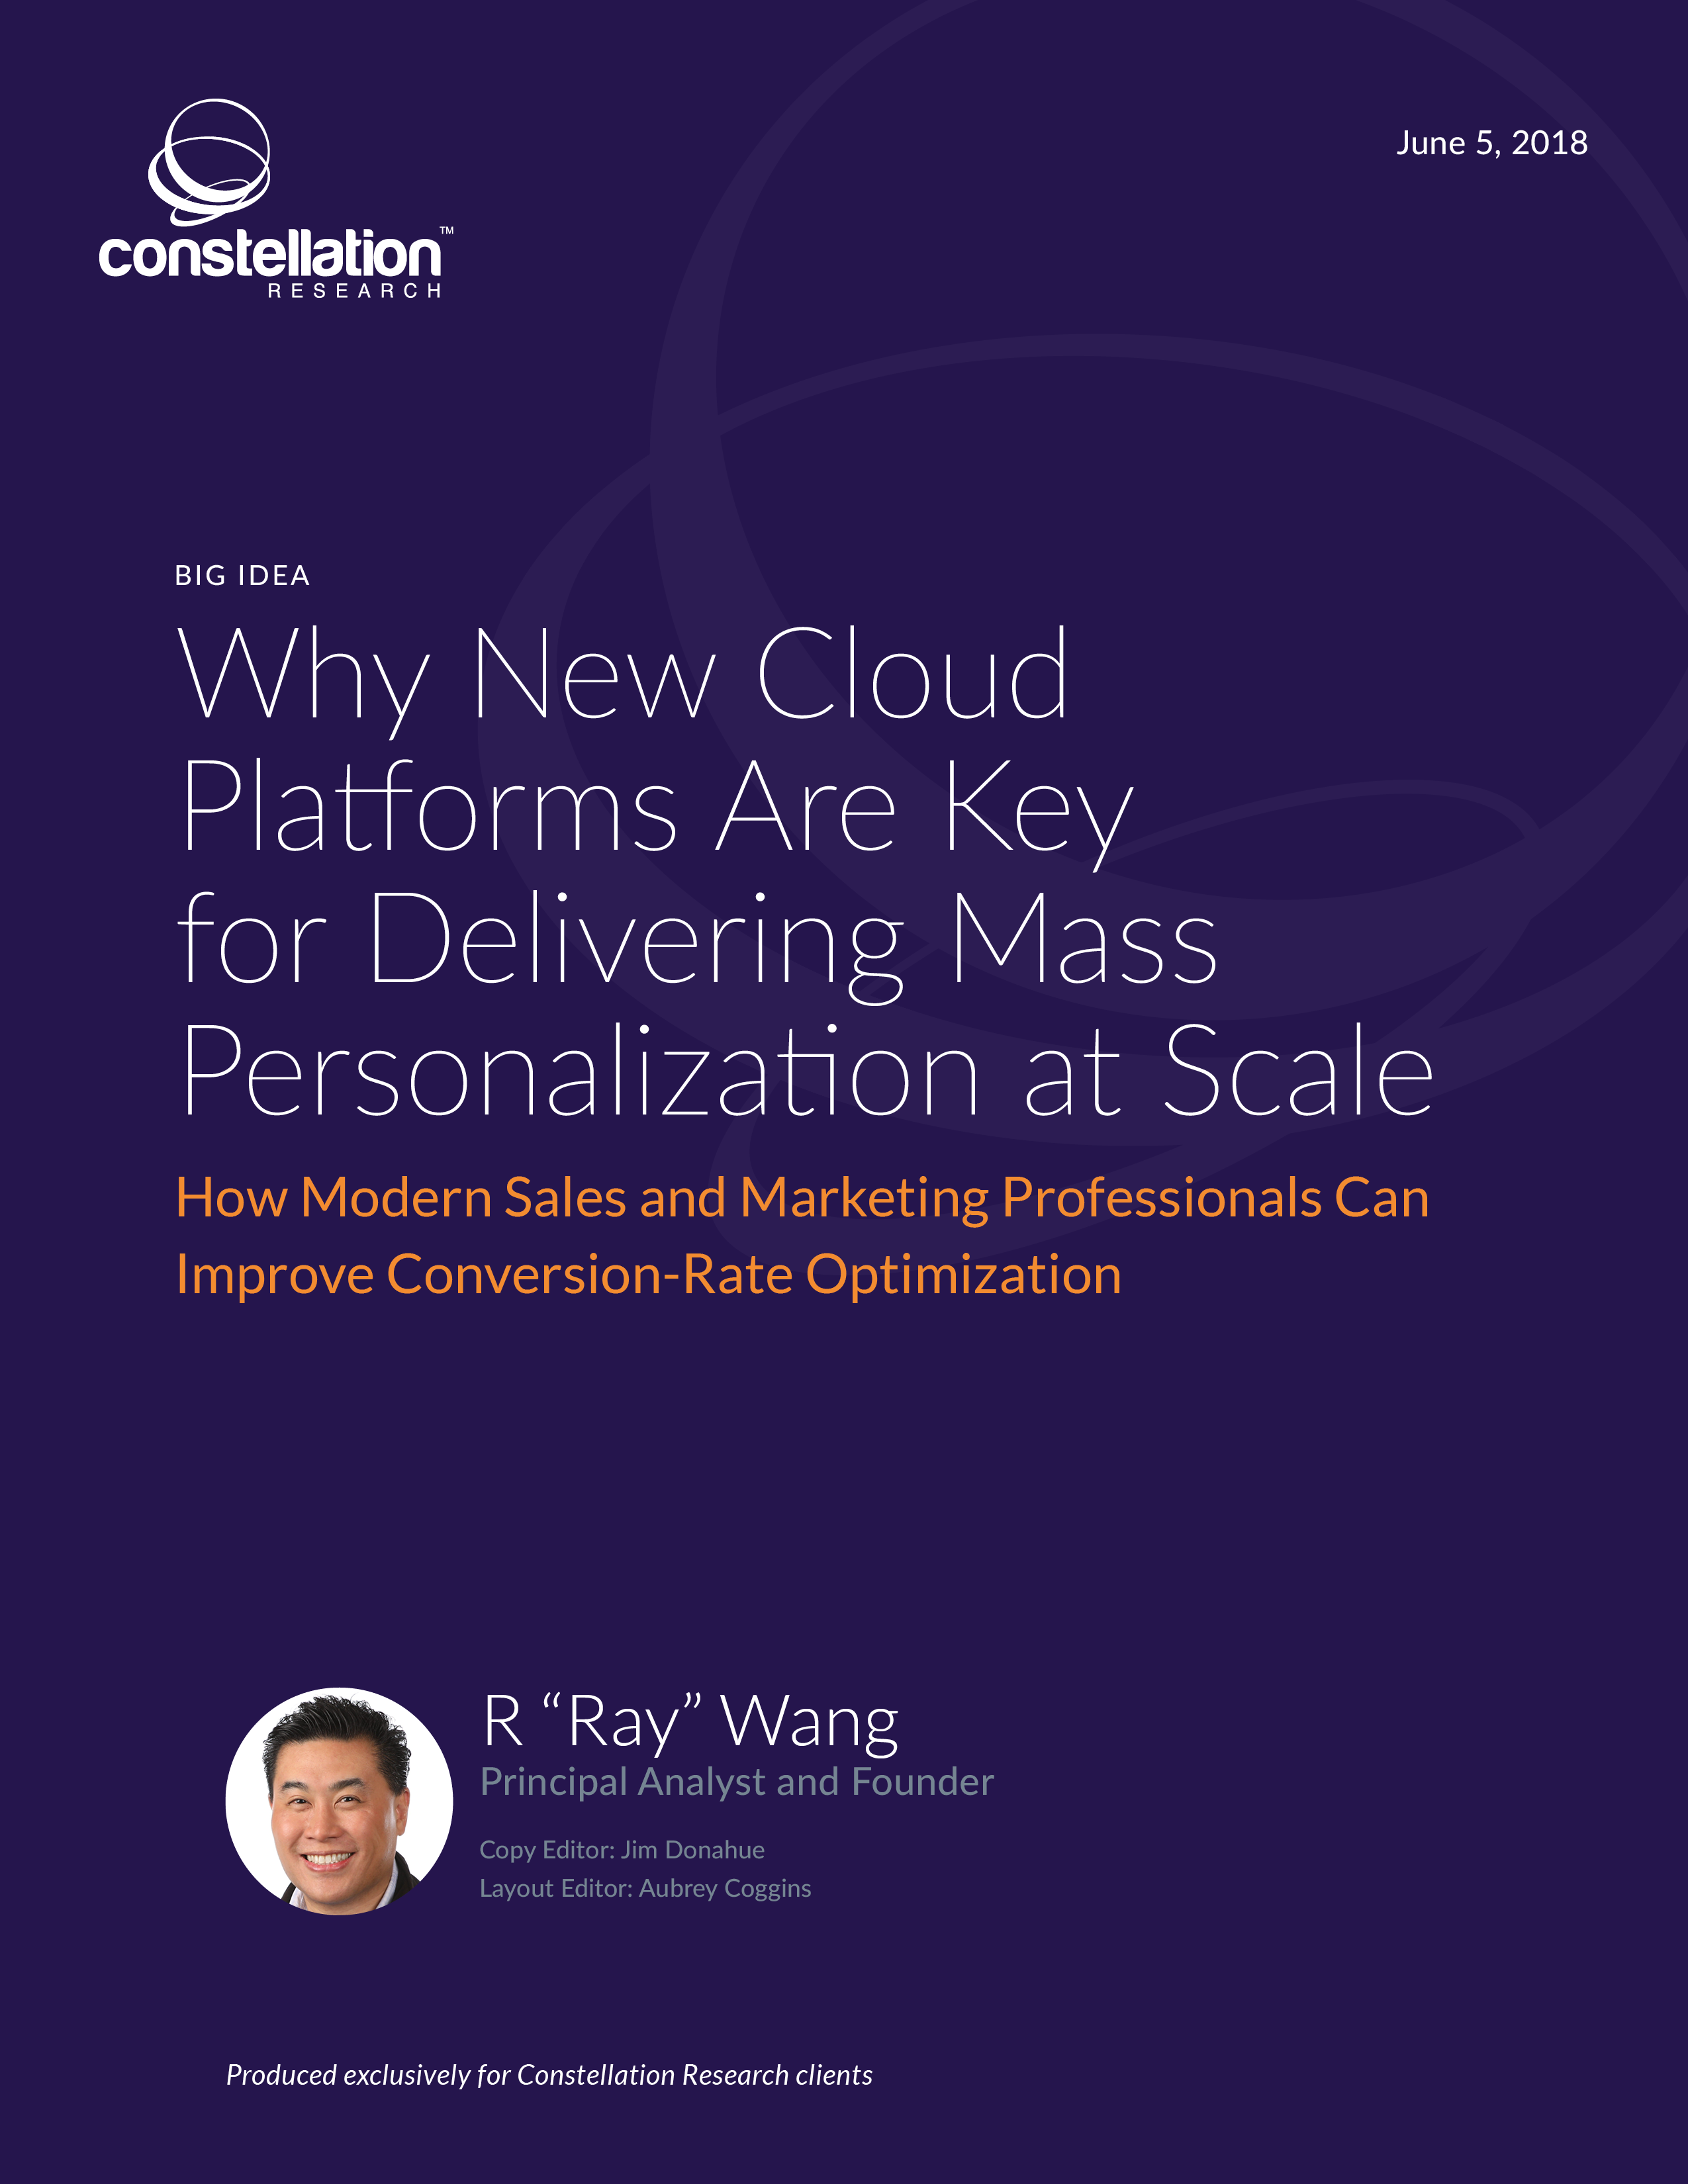 Why New Cloud Platforms are Key for Delivering Mass Personalization at Scale